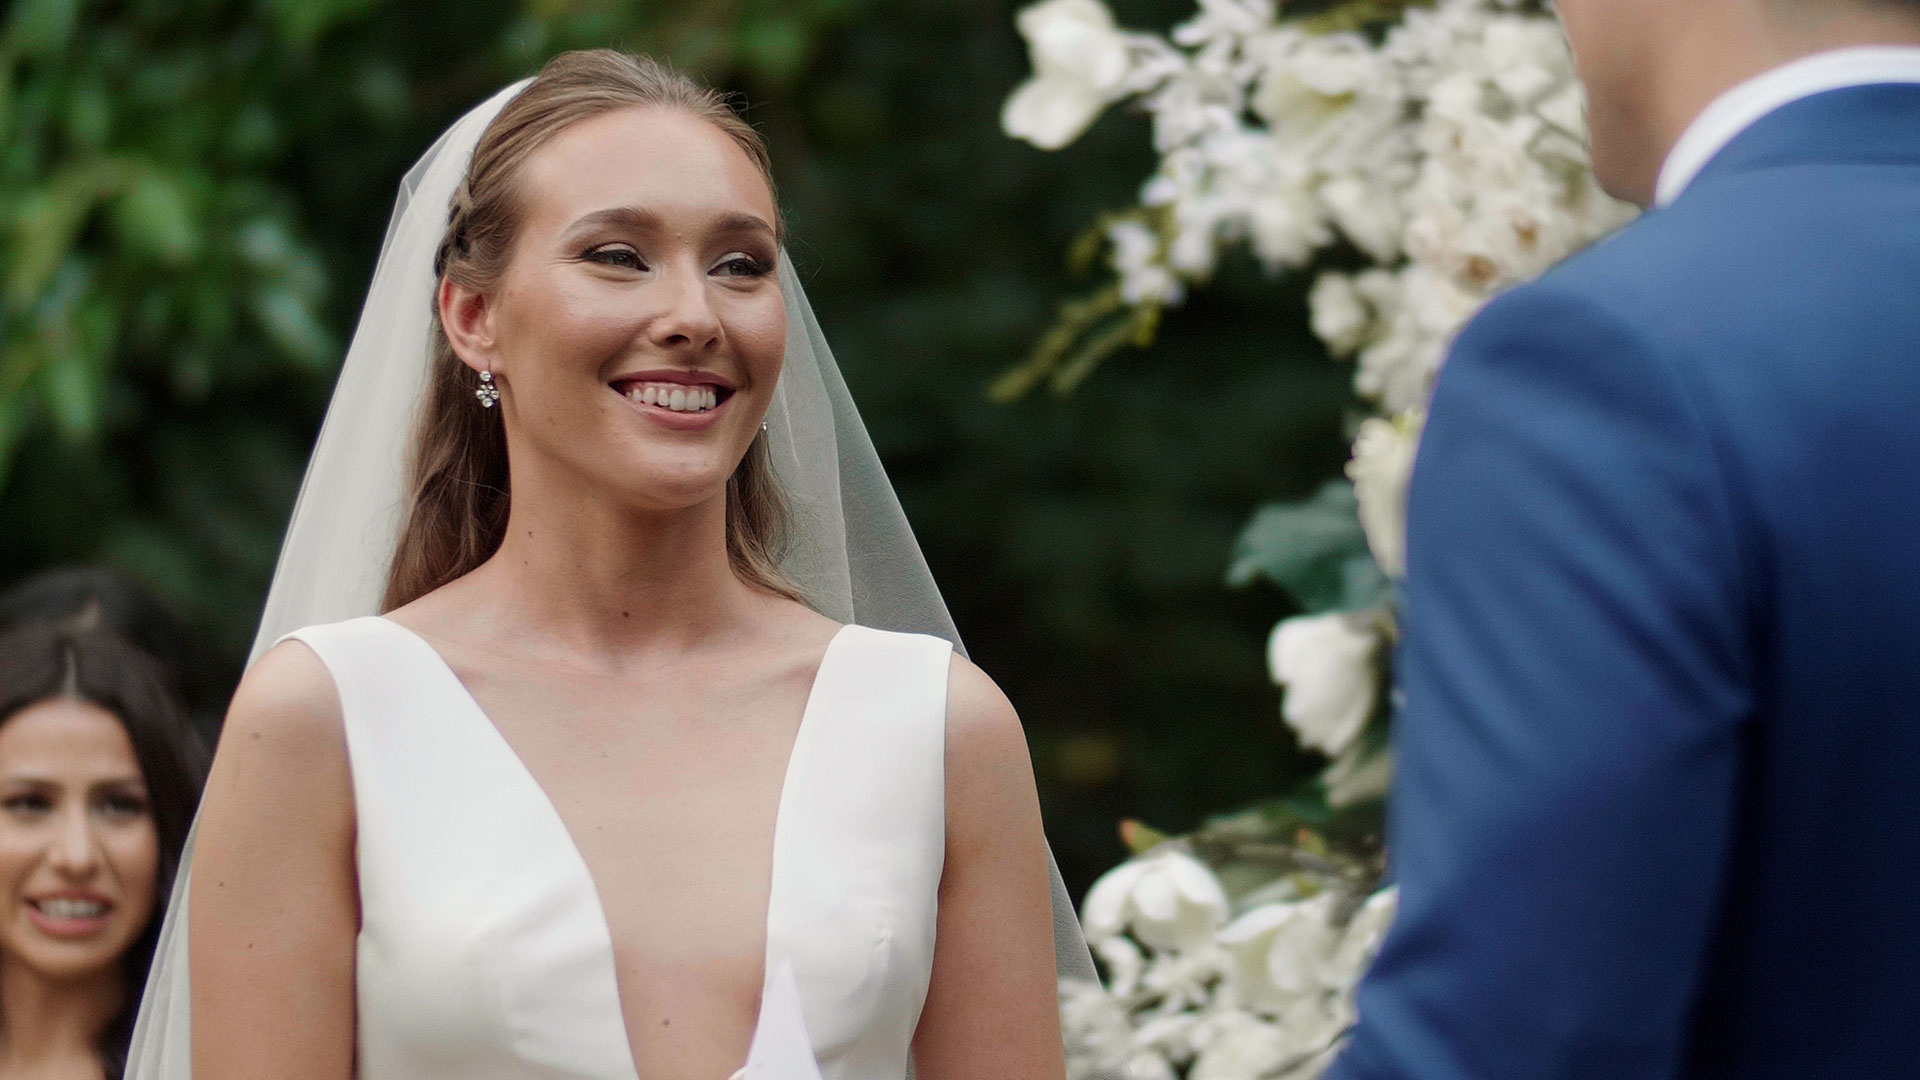 Bride says her own wedding vows to her groom